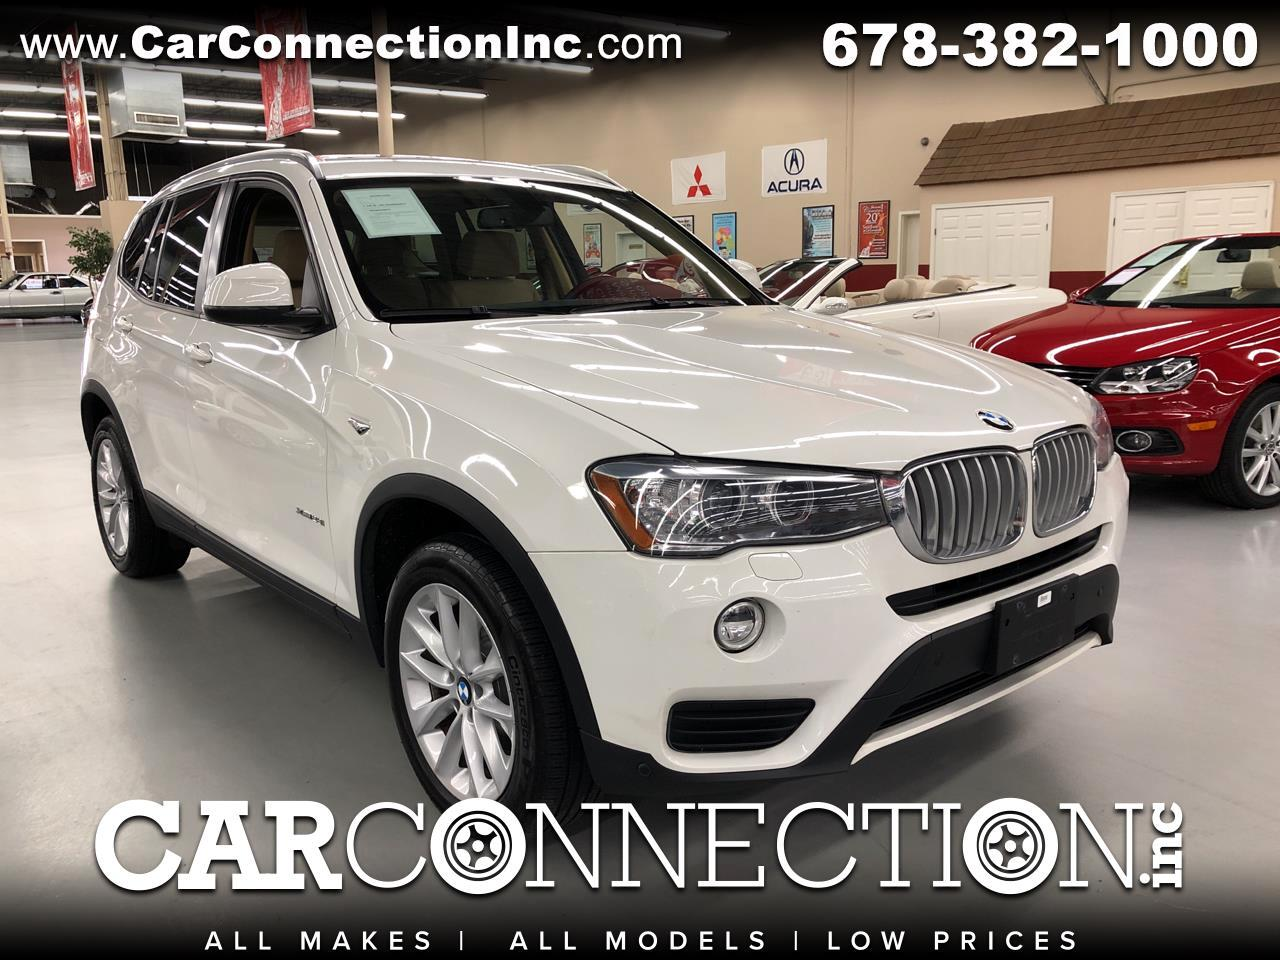 2016 BMW X3 xDrive28i Sports Activity Vehicle